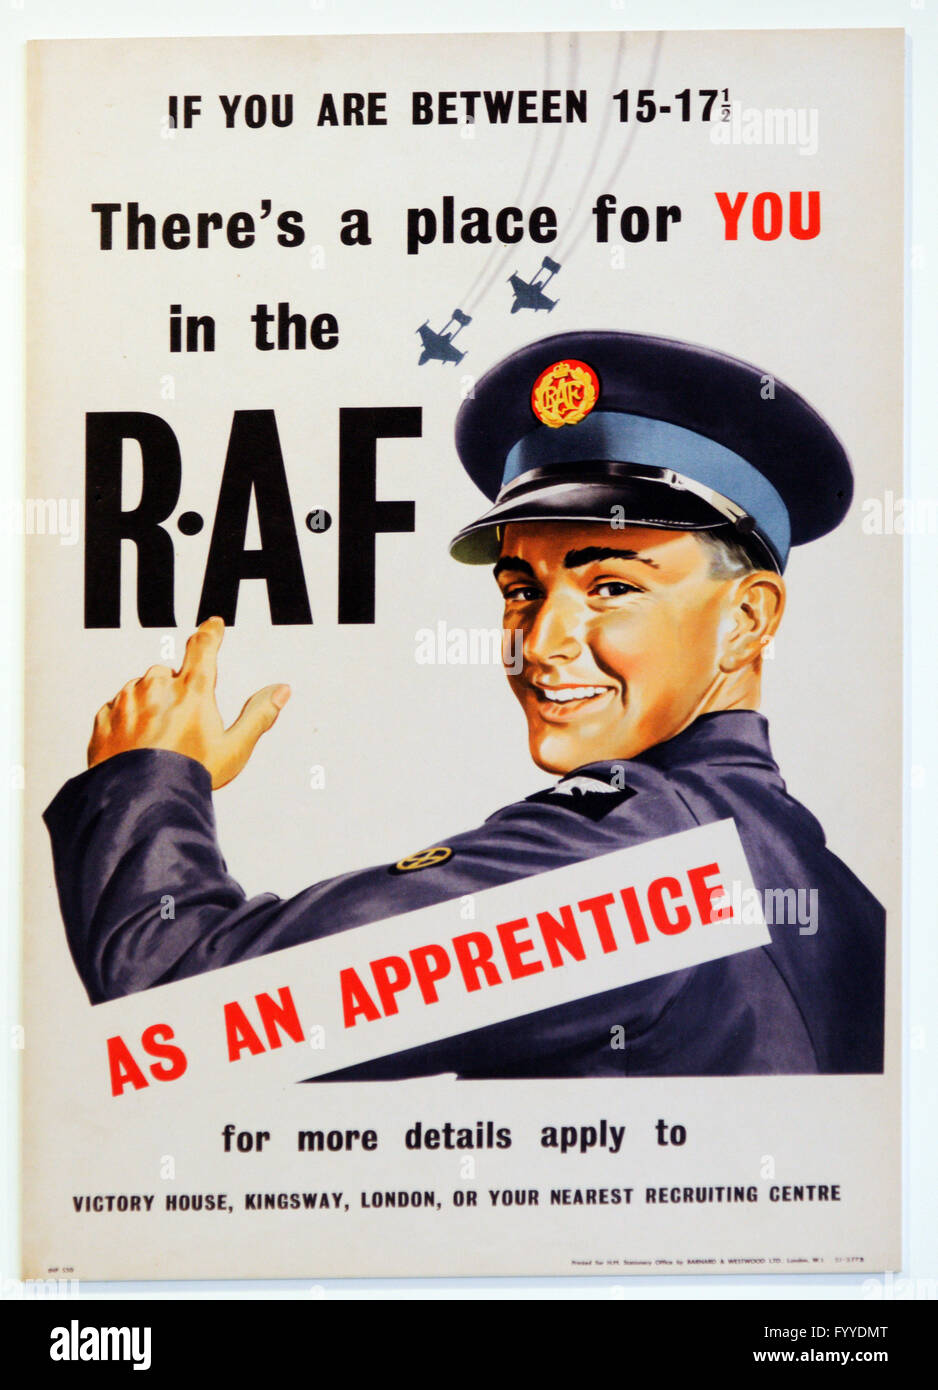 Second World War RAF Apprentice recruitment poster - Stock Image